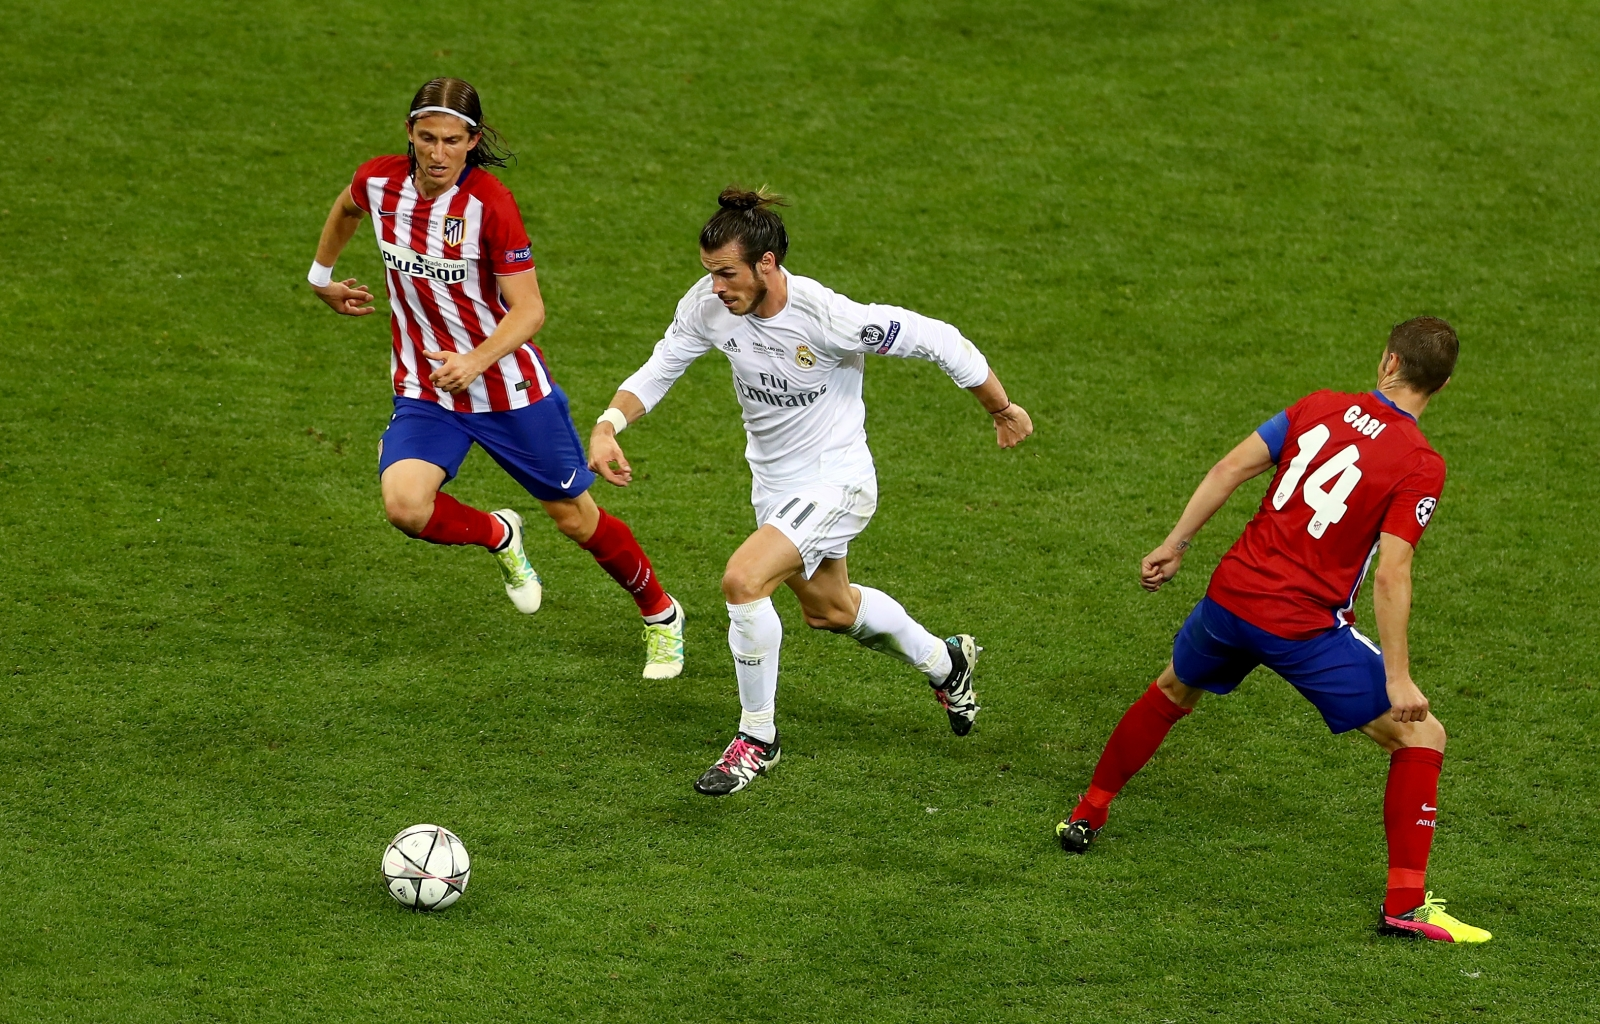 Gareth Bale in action for Real Madrid